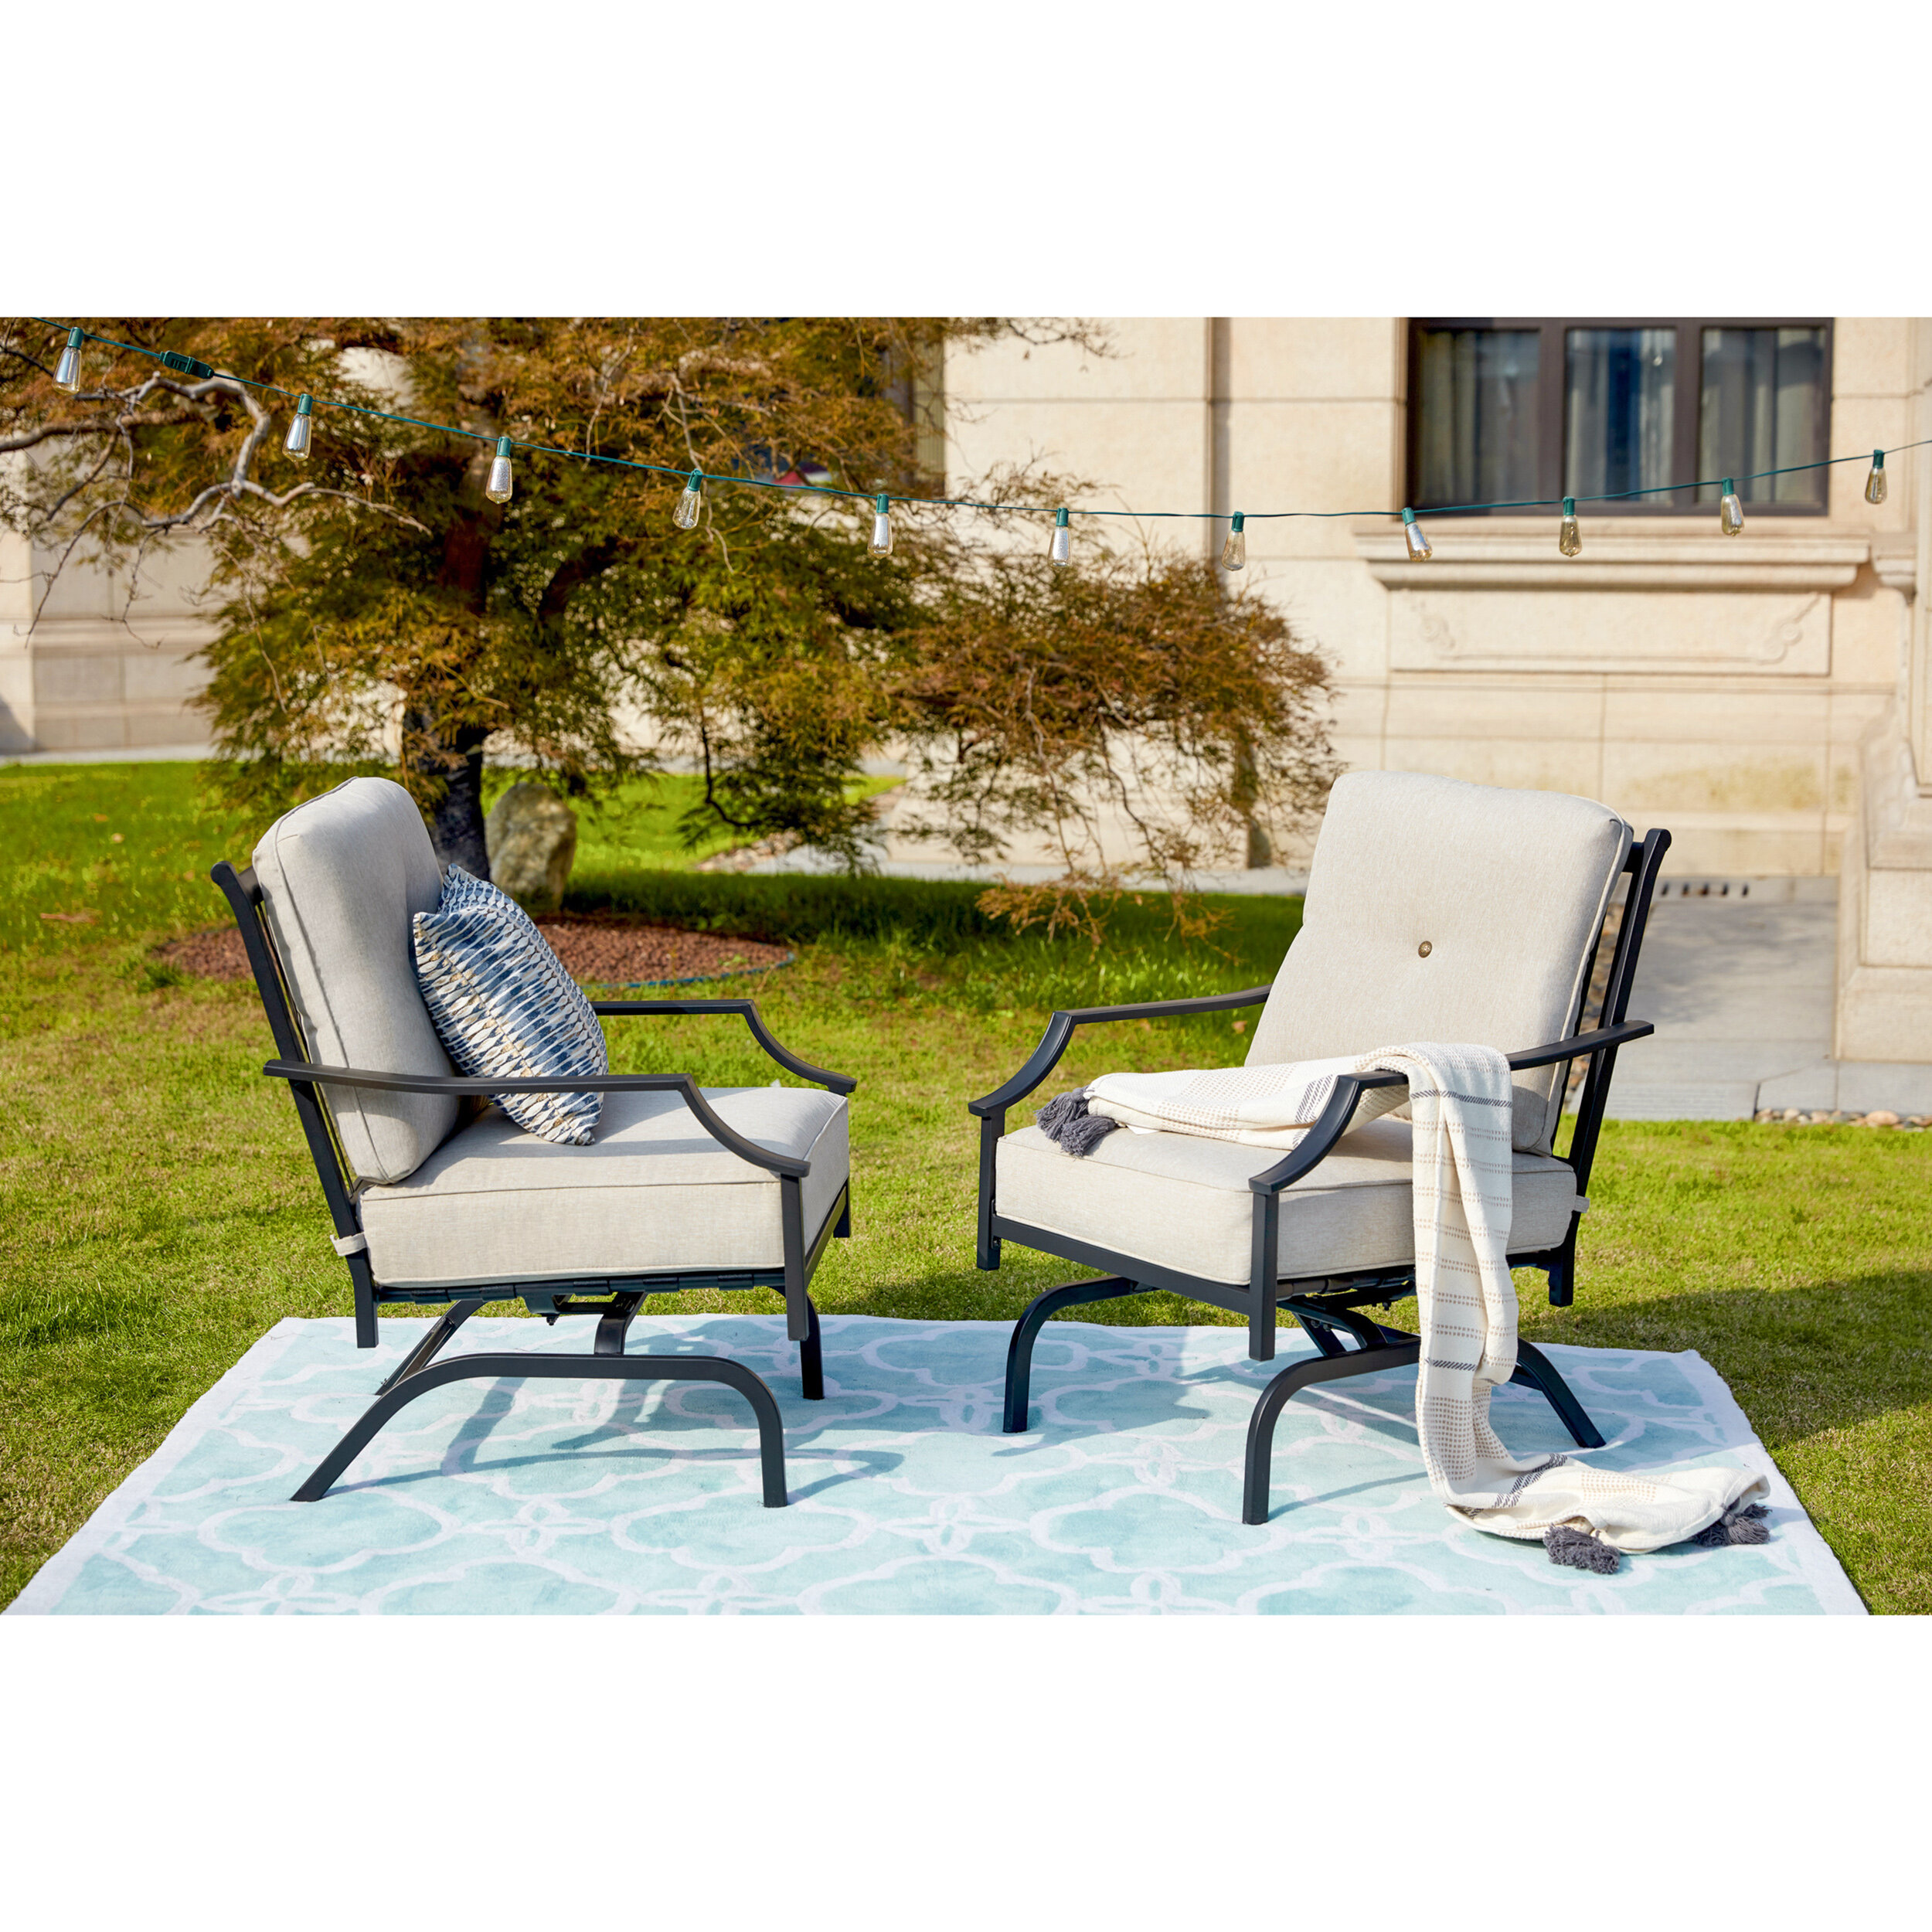 Siemens Outdoor Spring Rocking Chair With Cushions